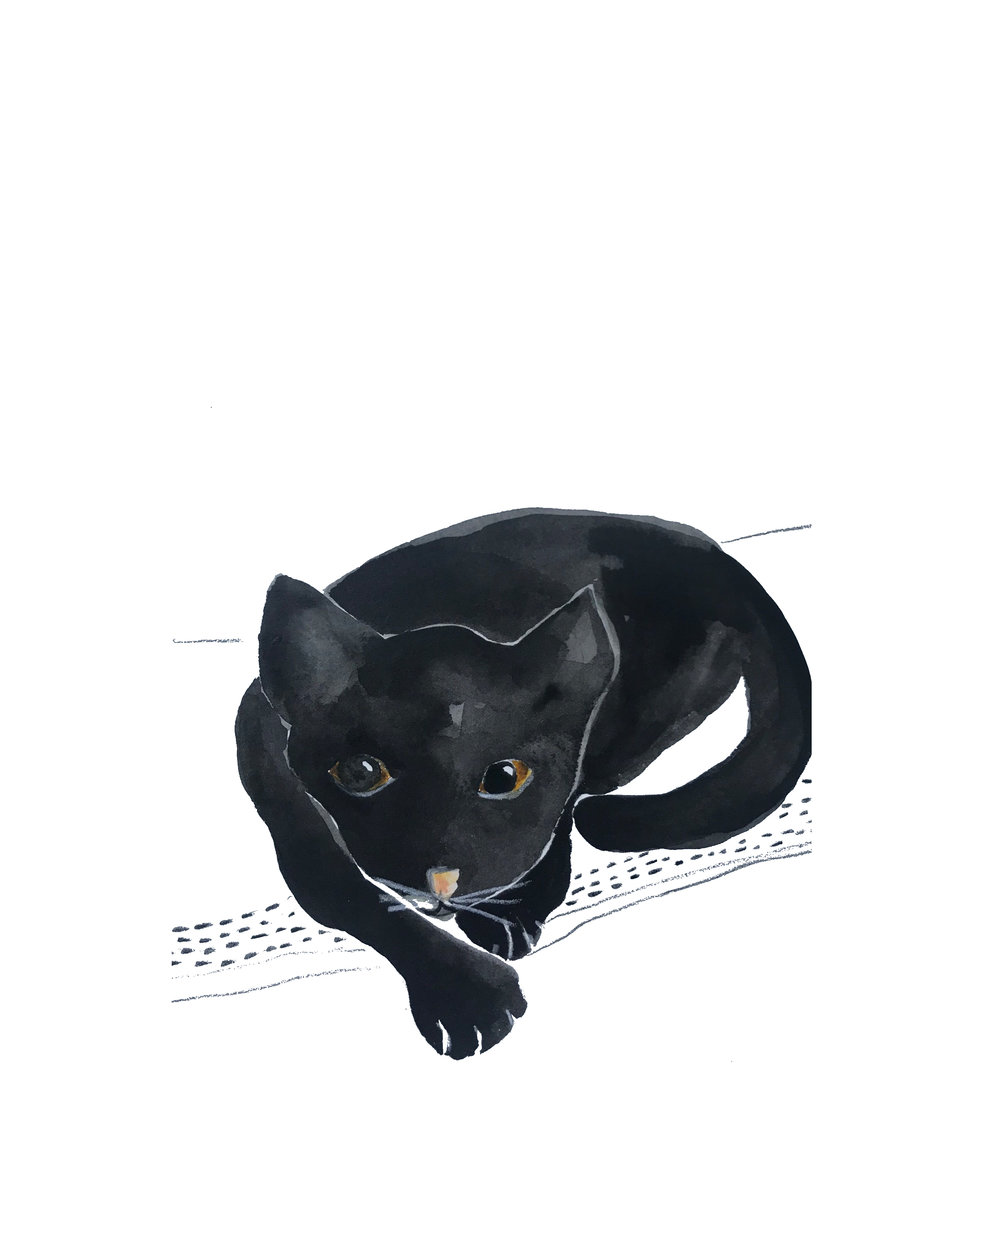 Black Cat, Watercolor, 2017